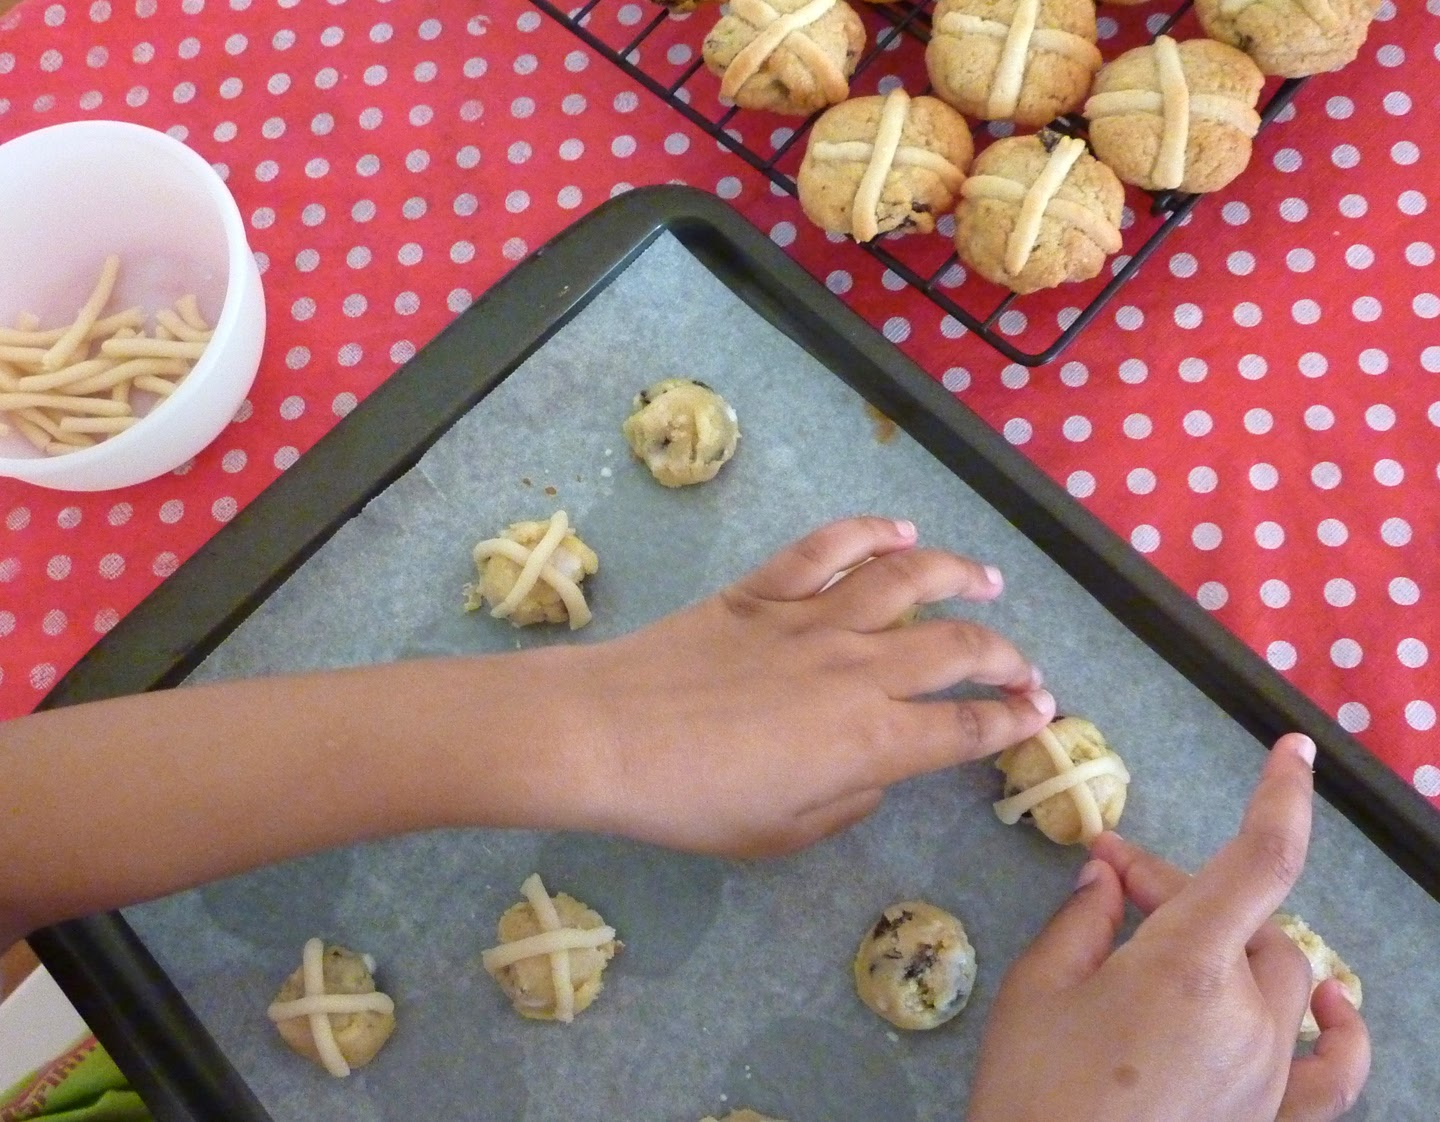 Placing marzipan crosses on the Hot Cross Bun Cookies